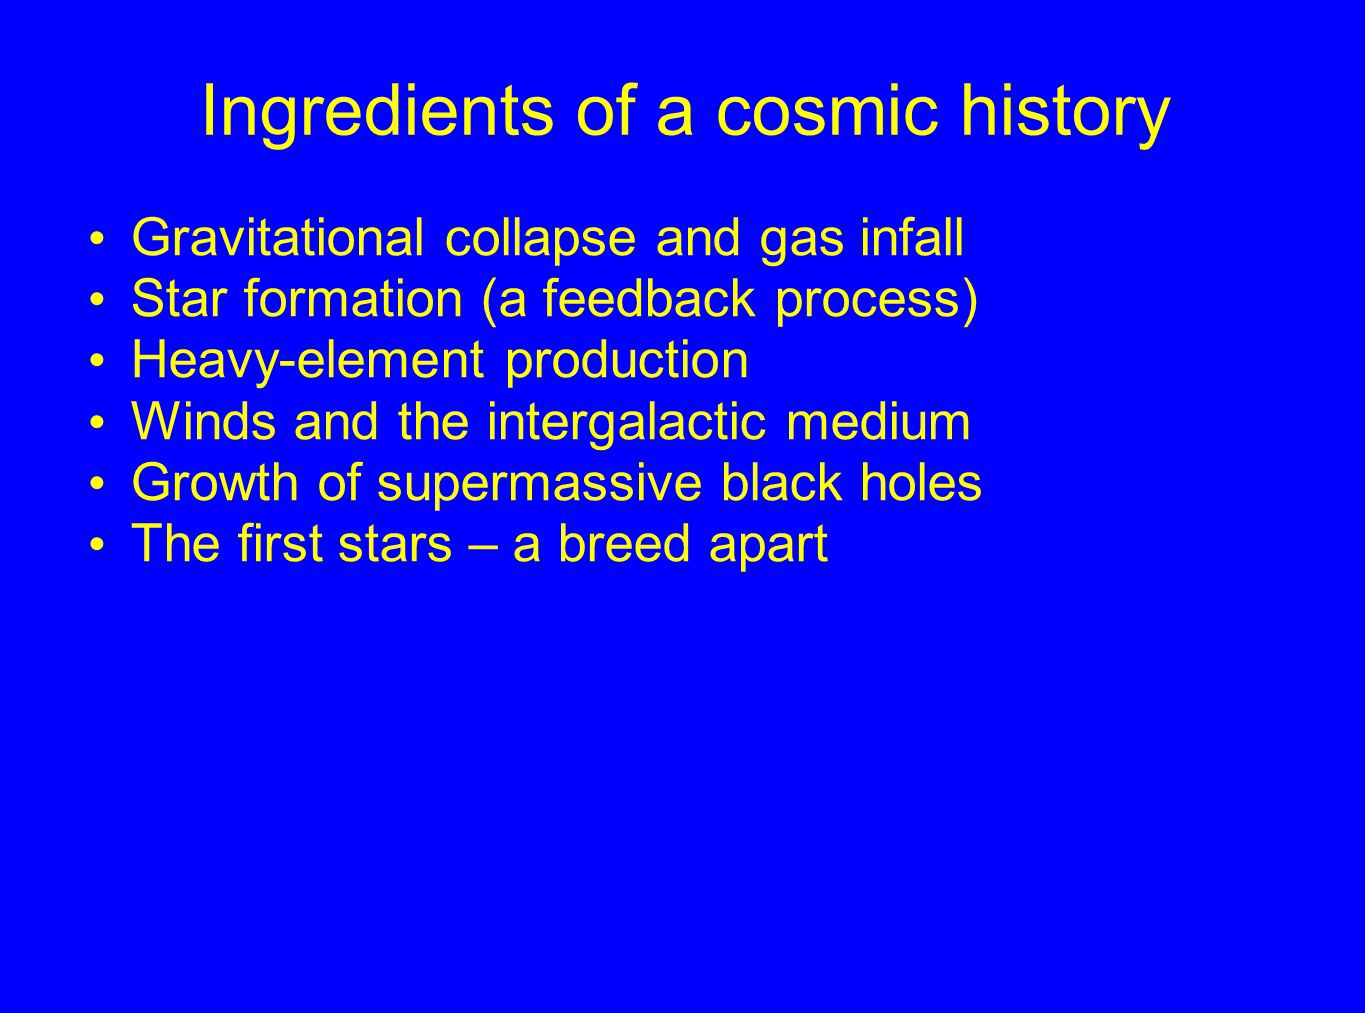 Ingredients of a cosmic history Gravitational collapse and gas infall Star formation (a feedback process) Heavy-element production Winds and the intergalactic medium Growth of supermassive black holes The first stars – a breed apart